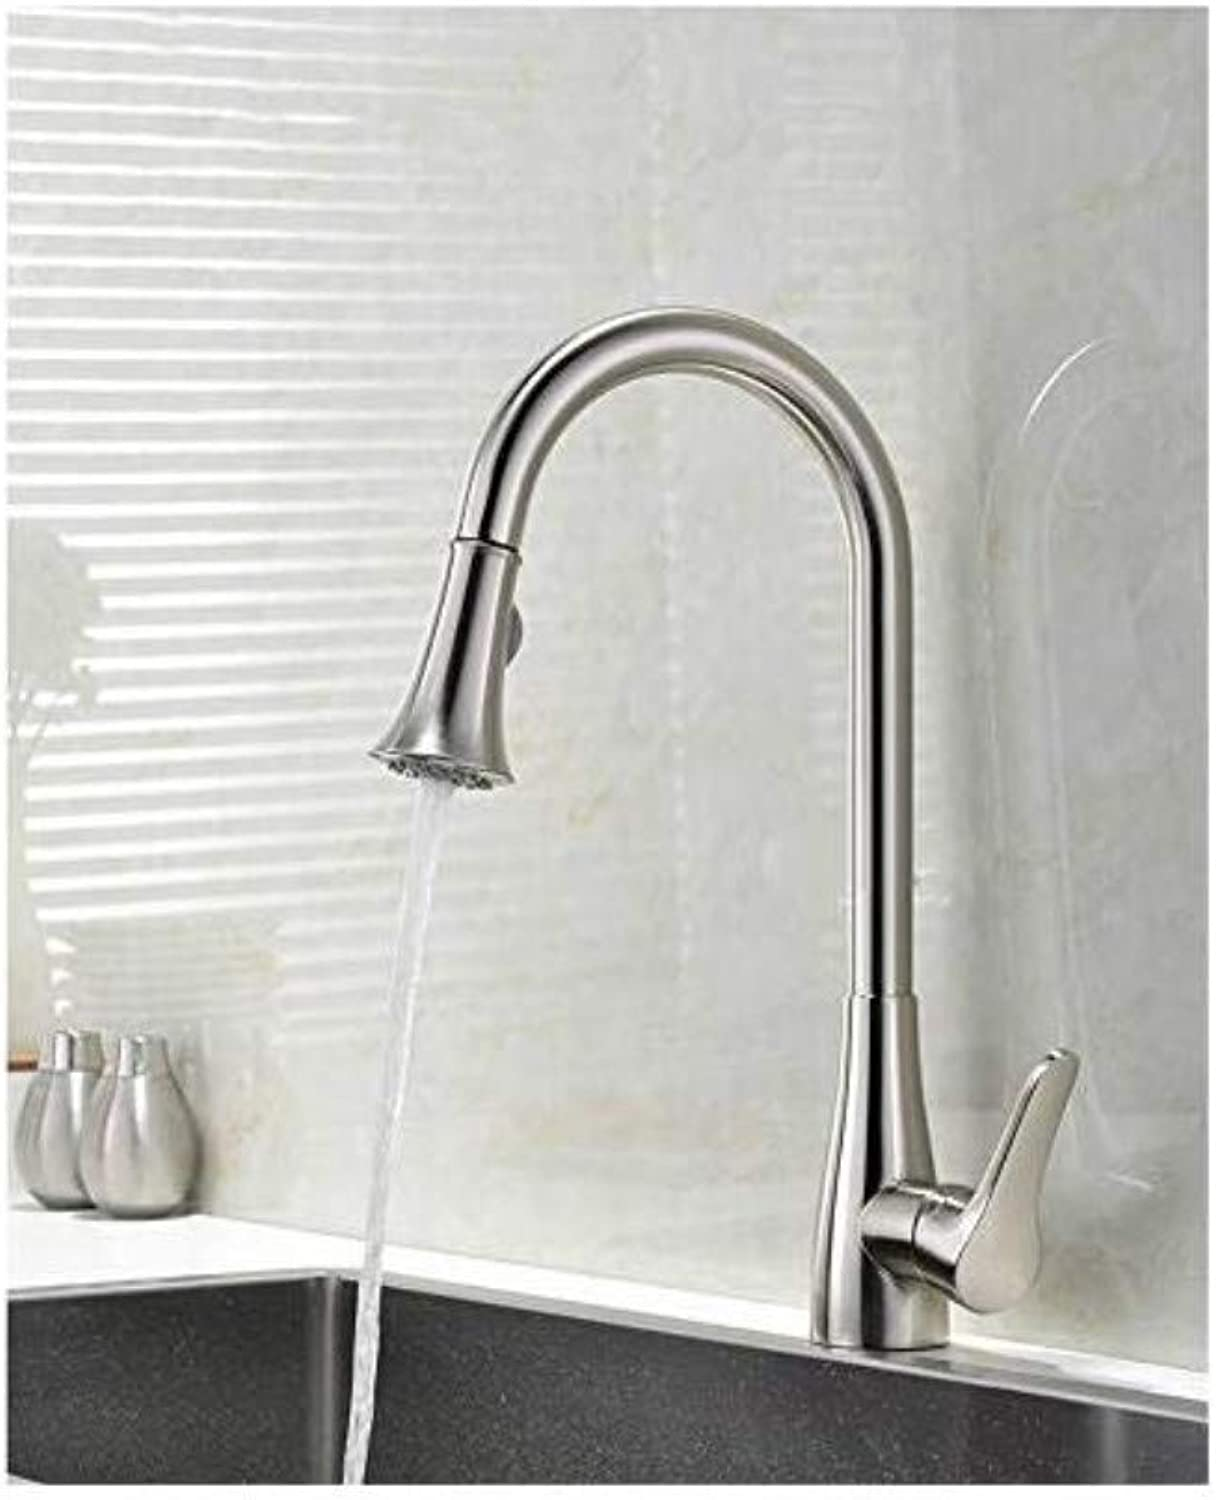 All Copper Faucet Taps Kitchen Hot and Cold Sink Drain Faucet Can Be redated High-End Kitchen Brushed Faucet